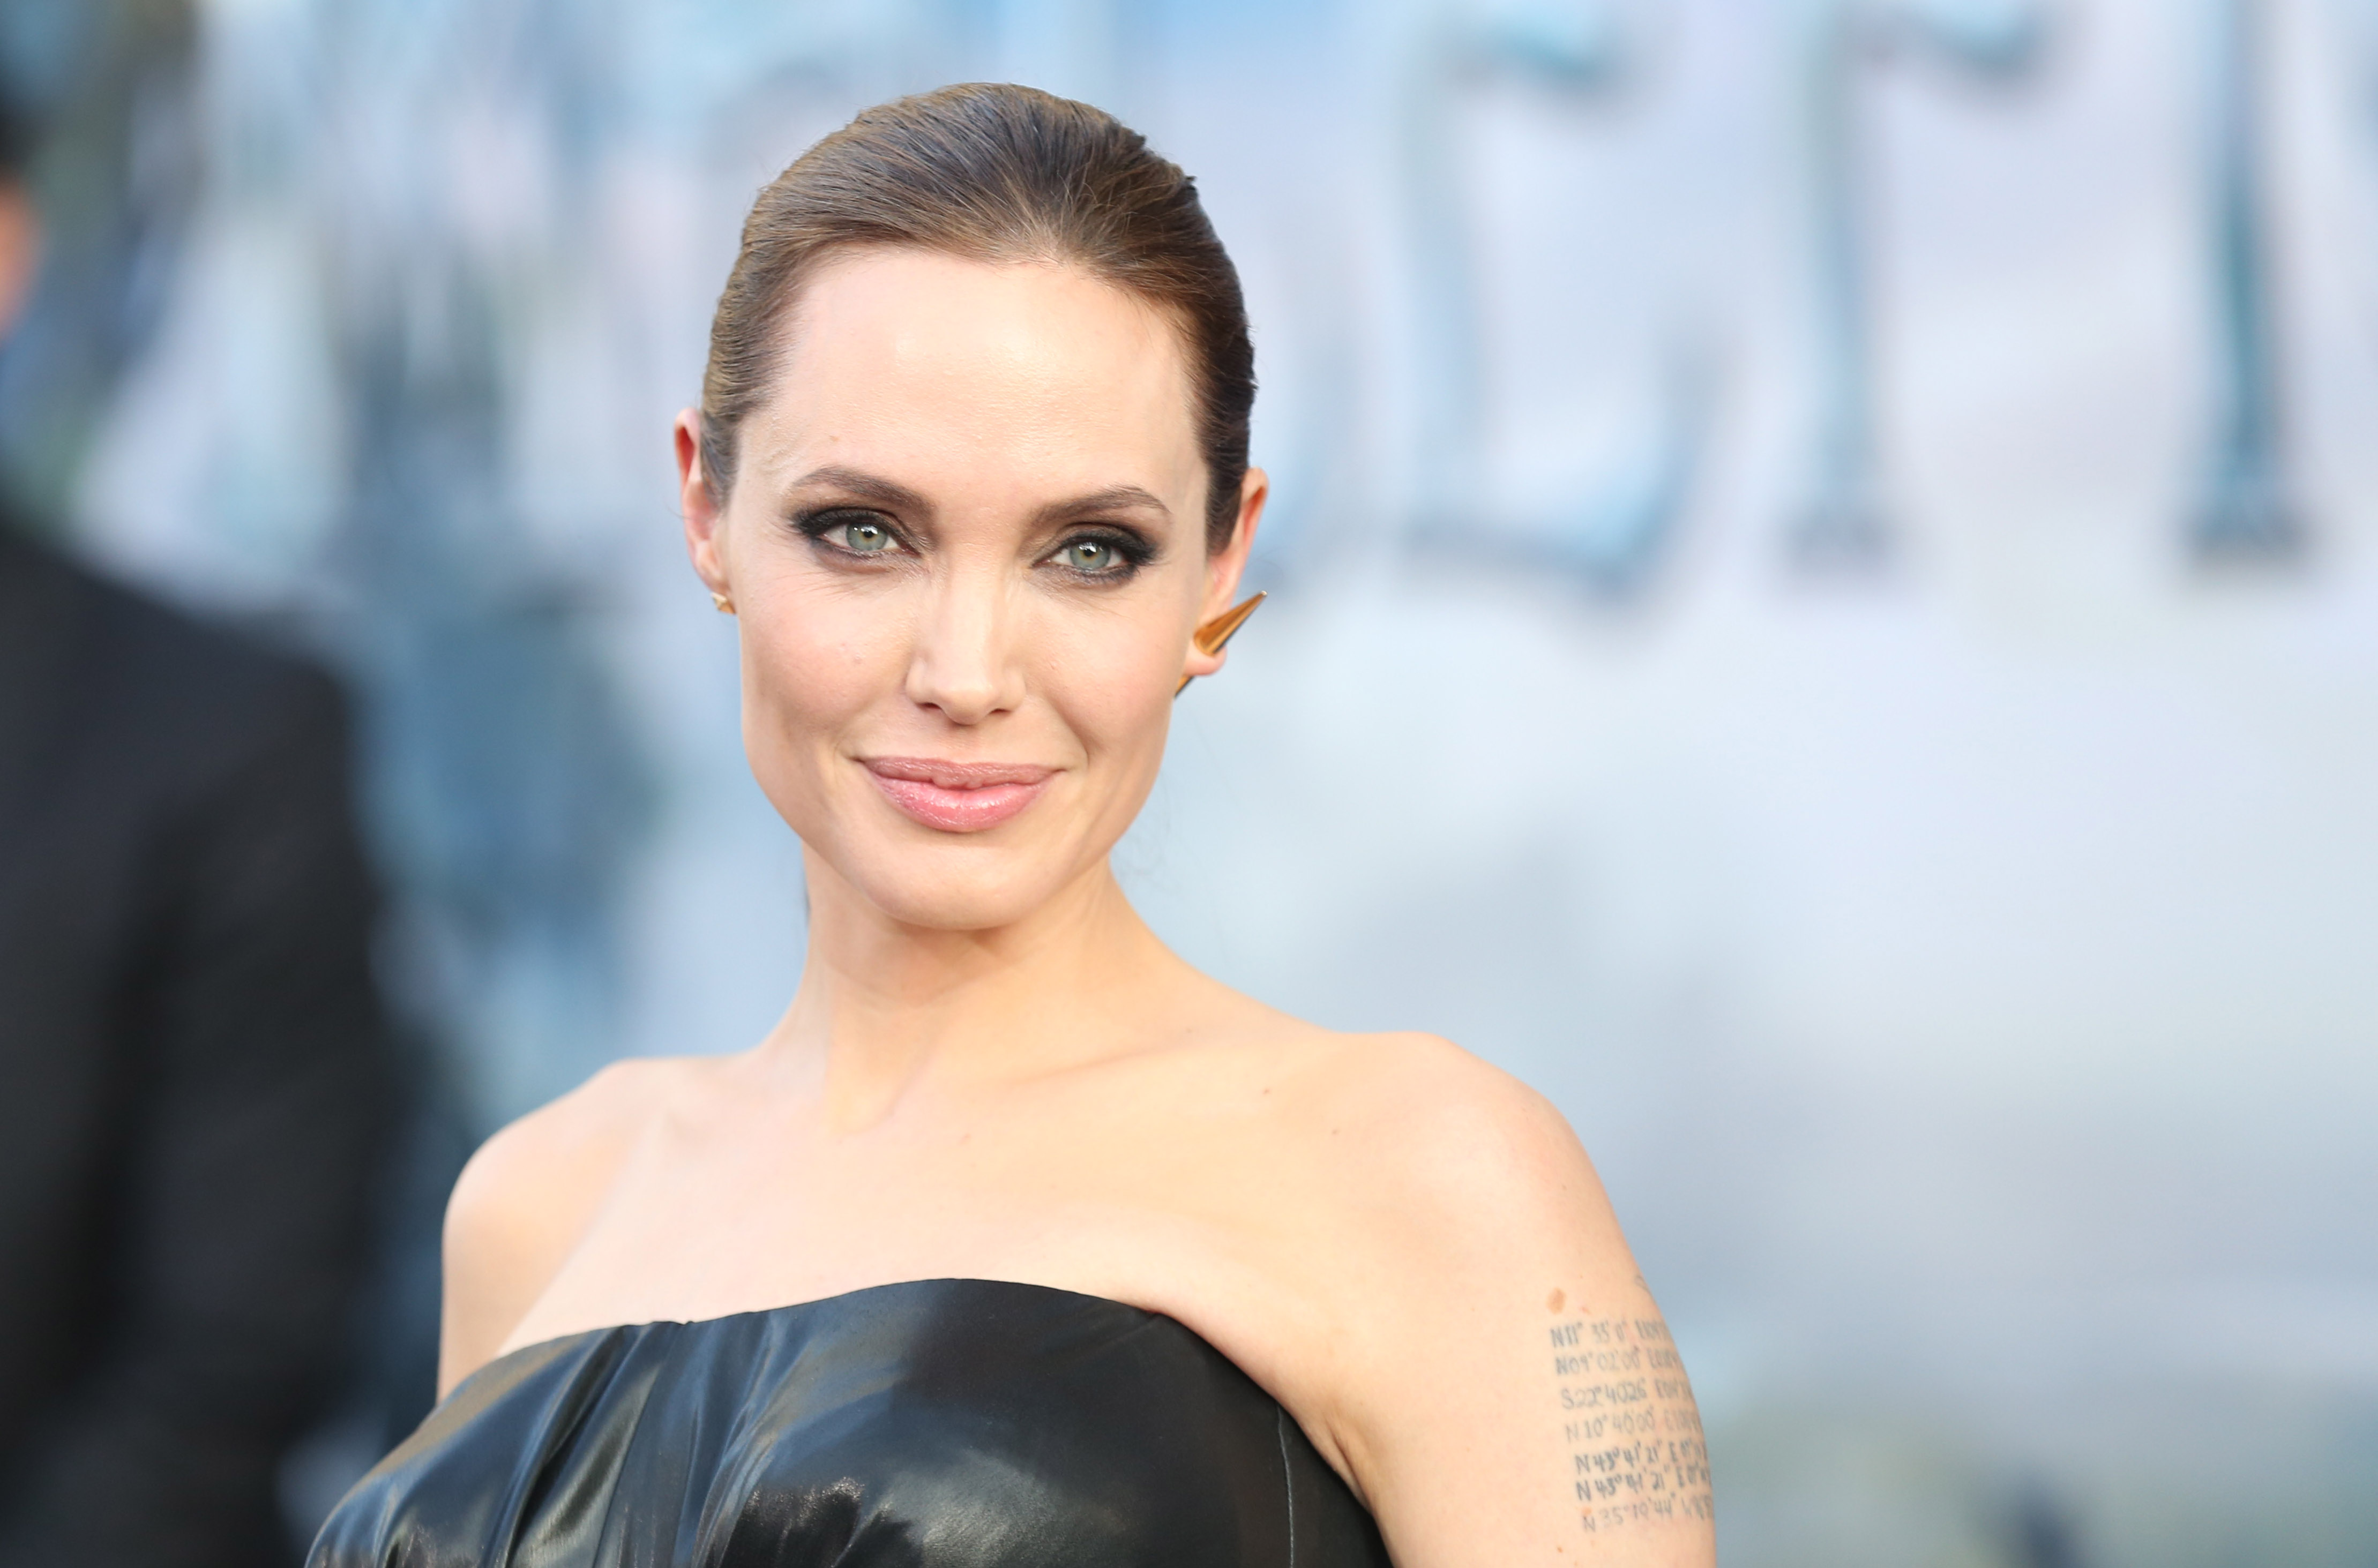 Angelina Jolie arrives at the world premiere of Maleficent at the El Capitan Theatre on May 28, 2014 in Los Angeles.